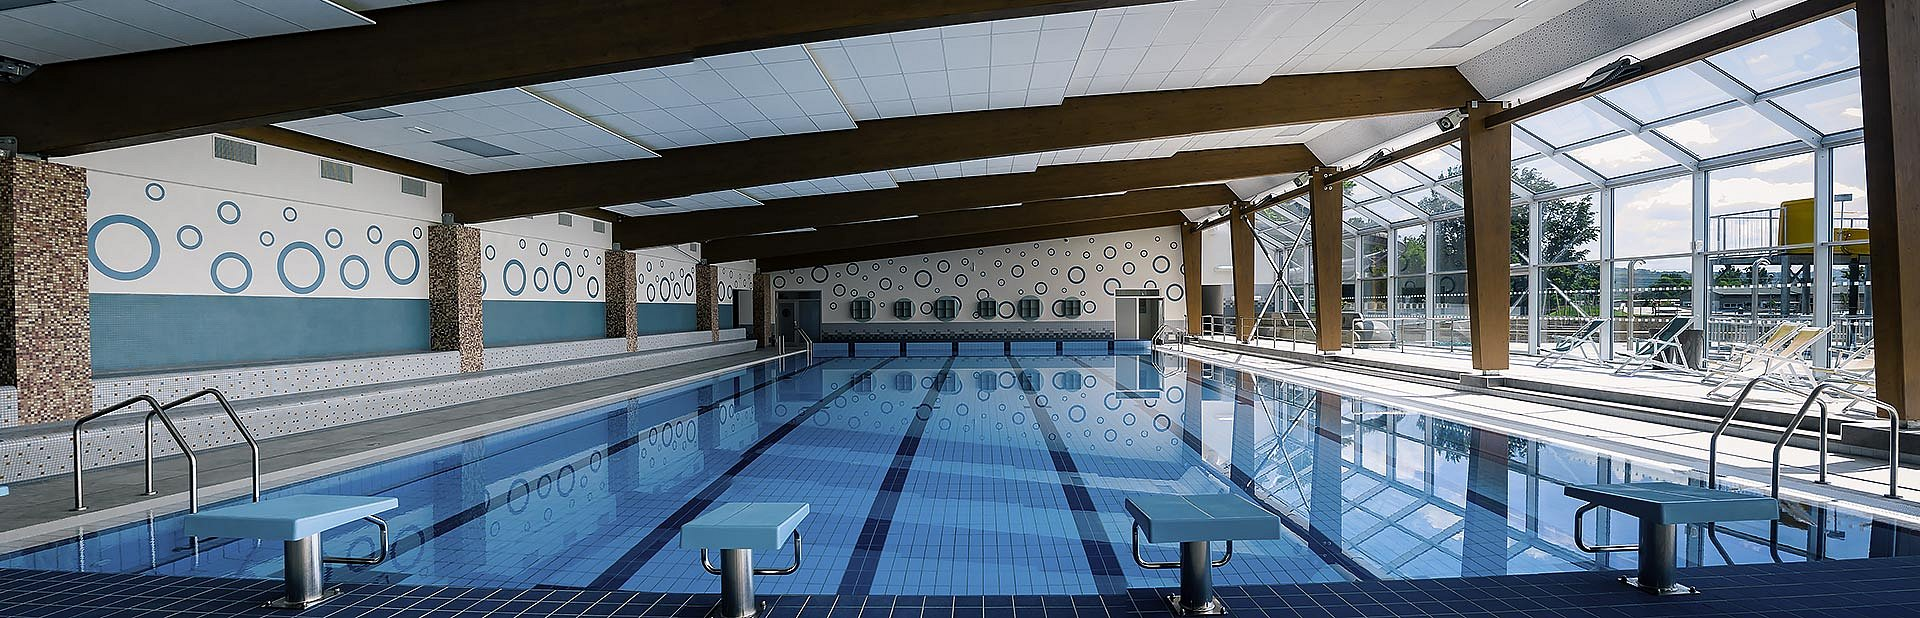 Indoor pool - panorama